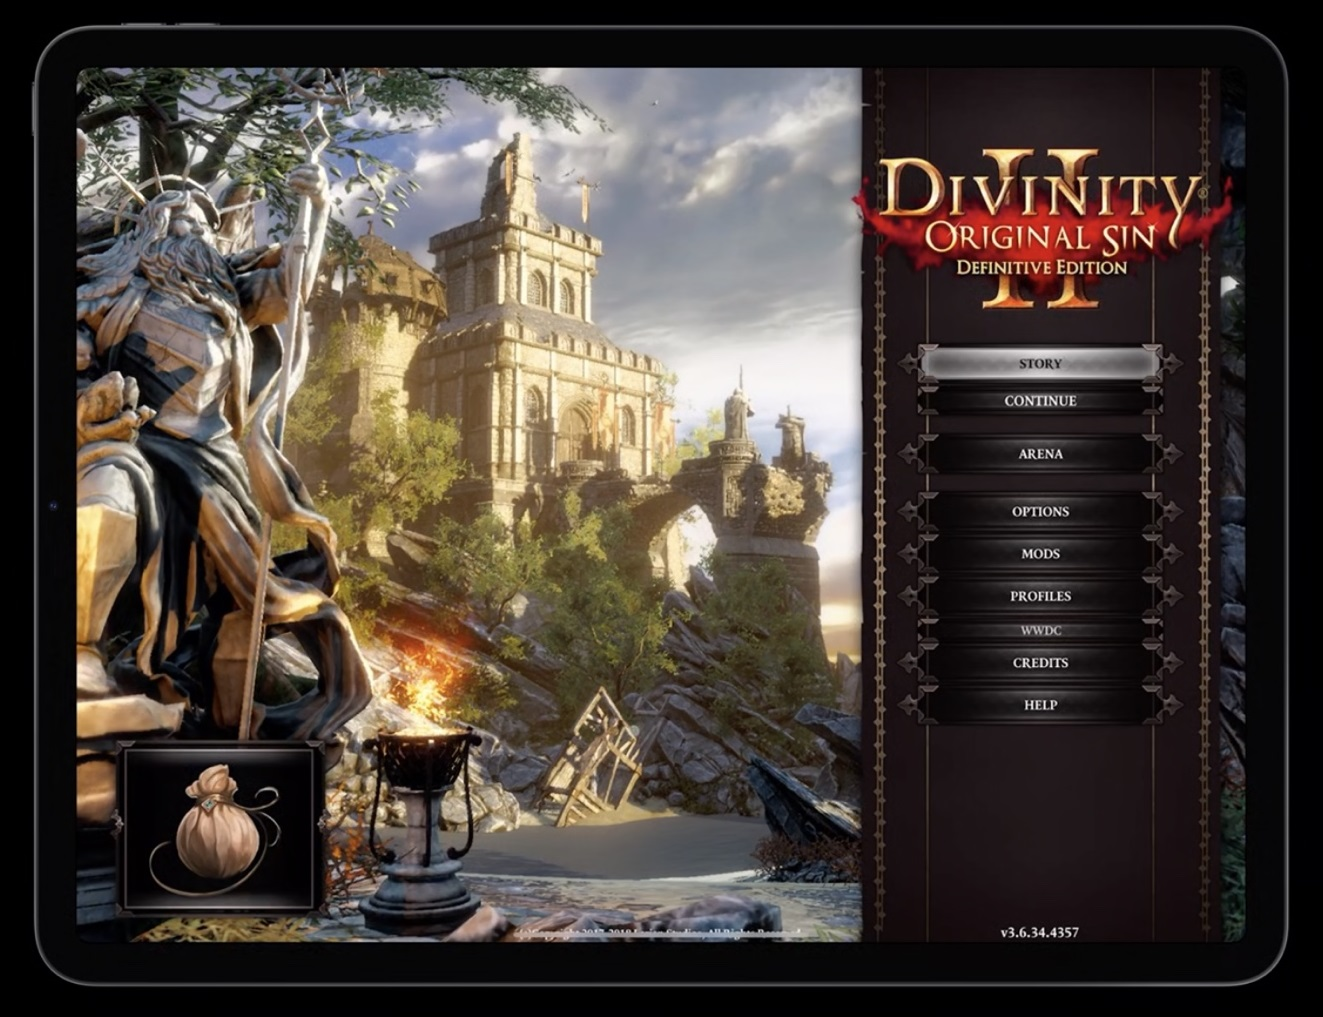 Divinity: Original Sin 2 – Definitive Edition is heading for iPad soon after being unveiled at WWDC 2020